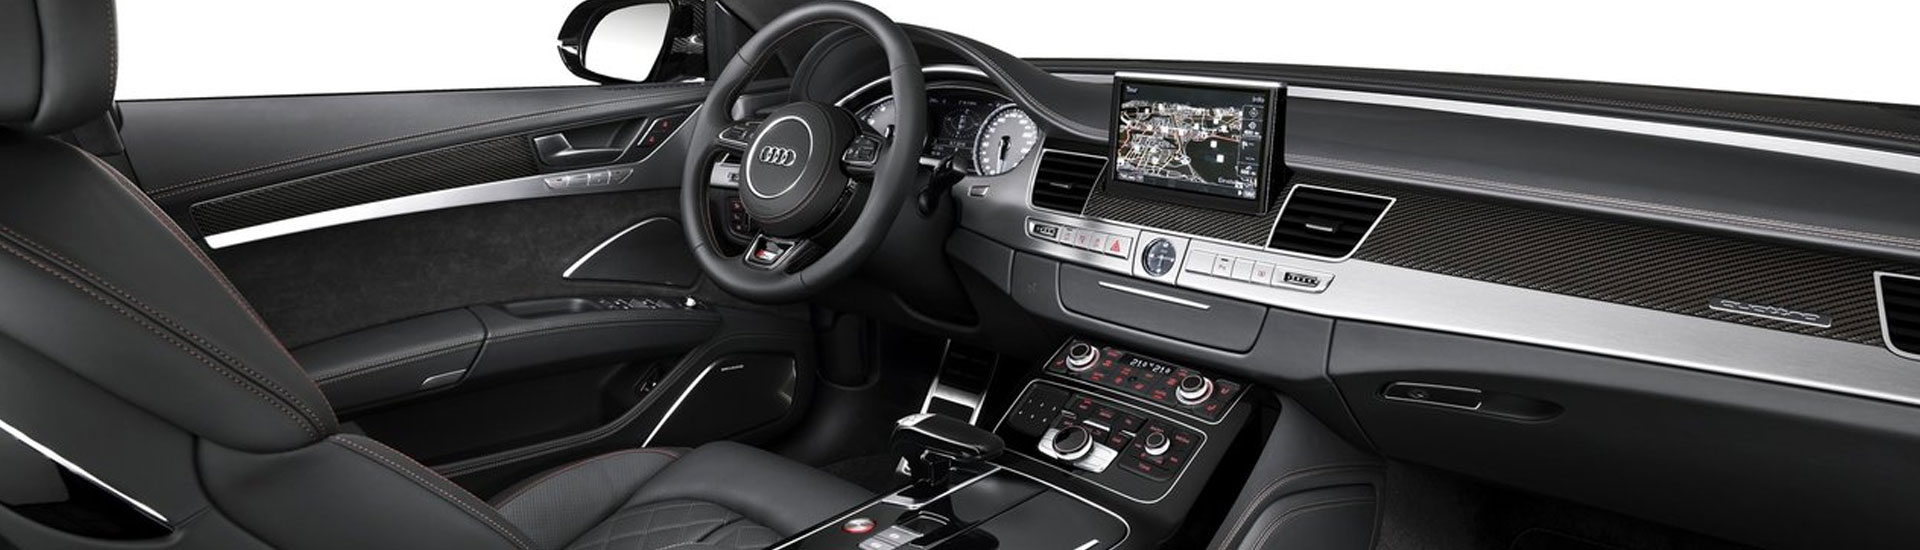 2005 Audi TT Custom Dash Kits